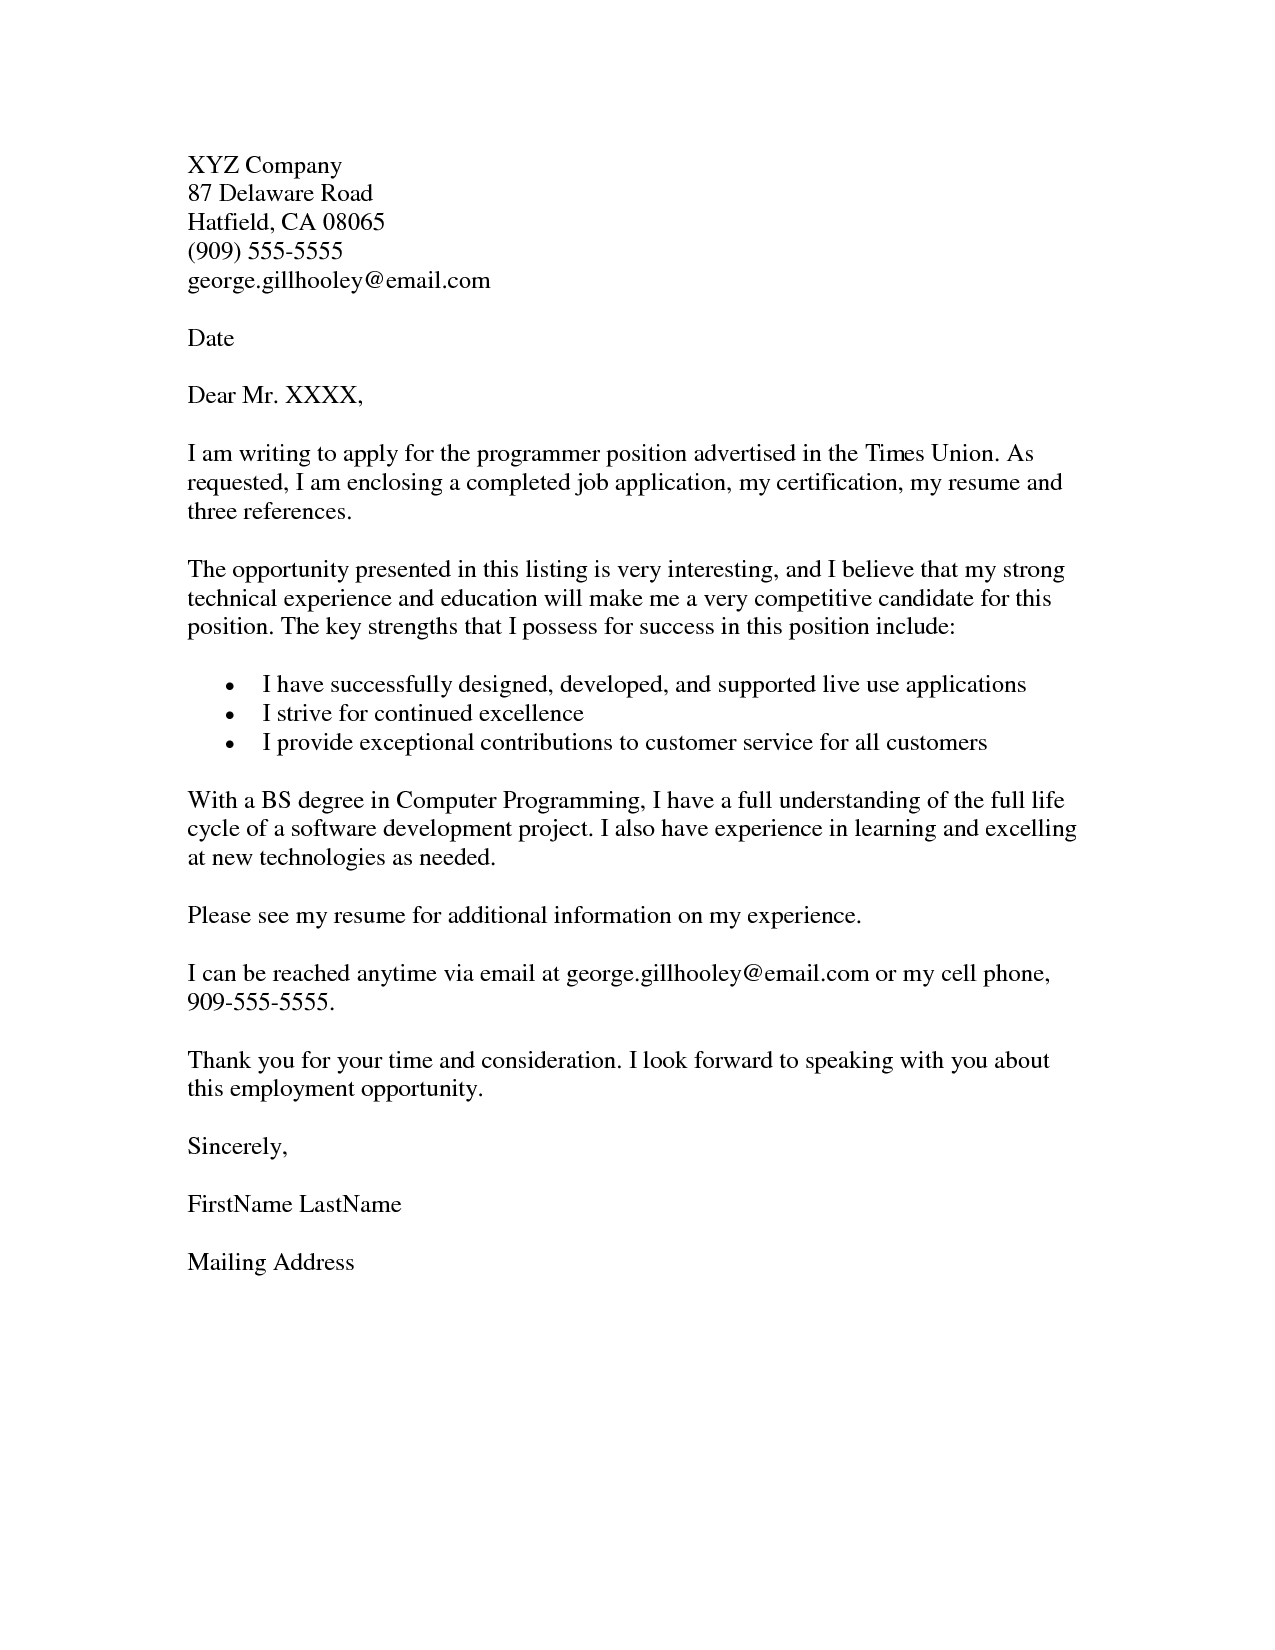 Cover letter sample cover letter for job application in for Covering letter to apply for a job